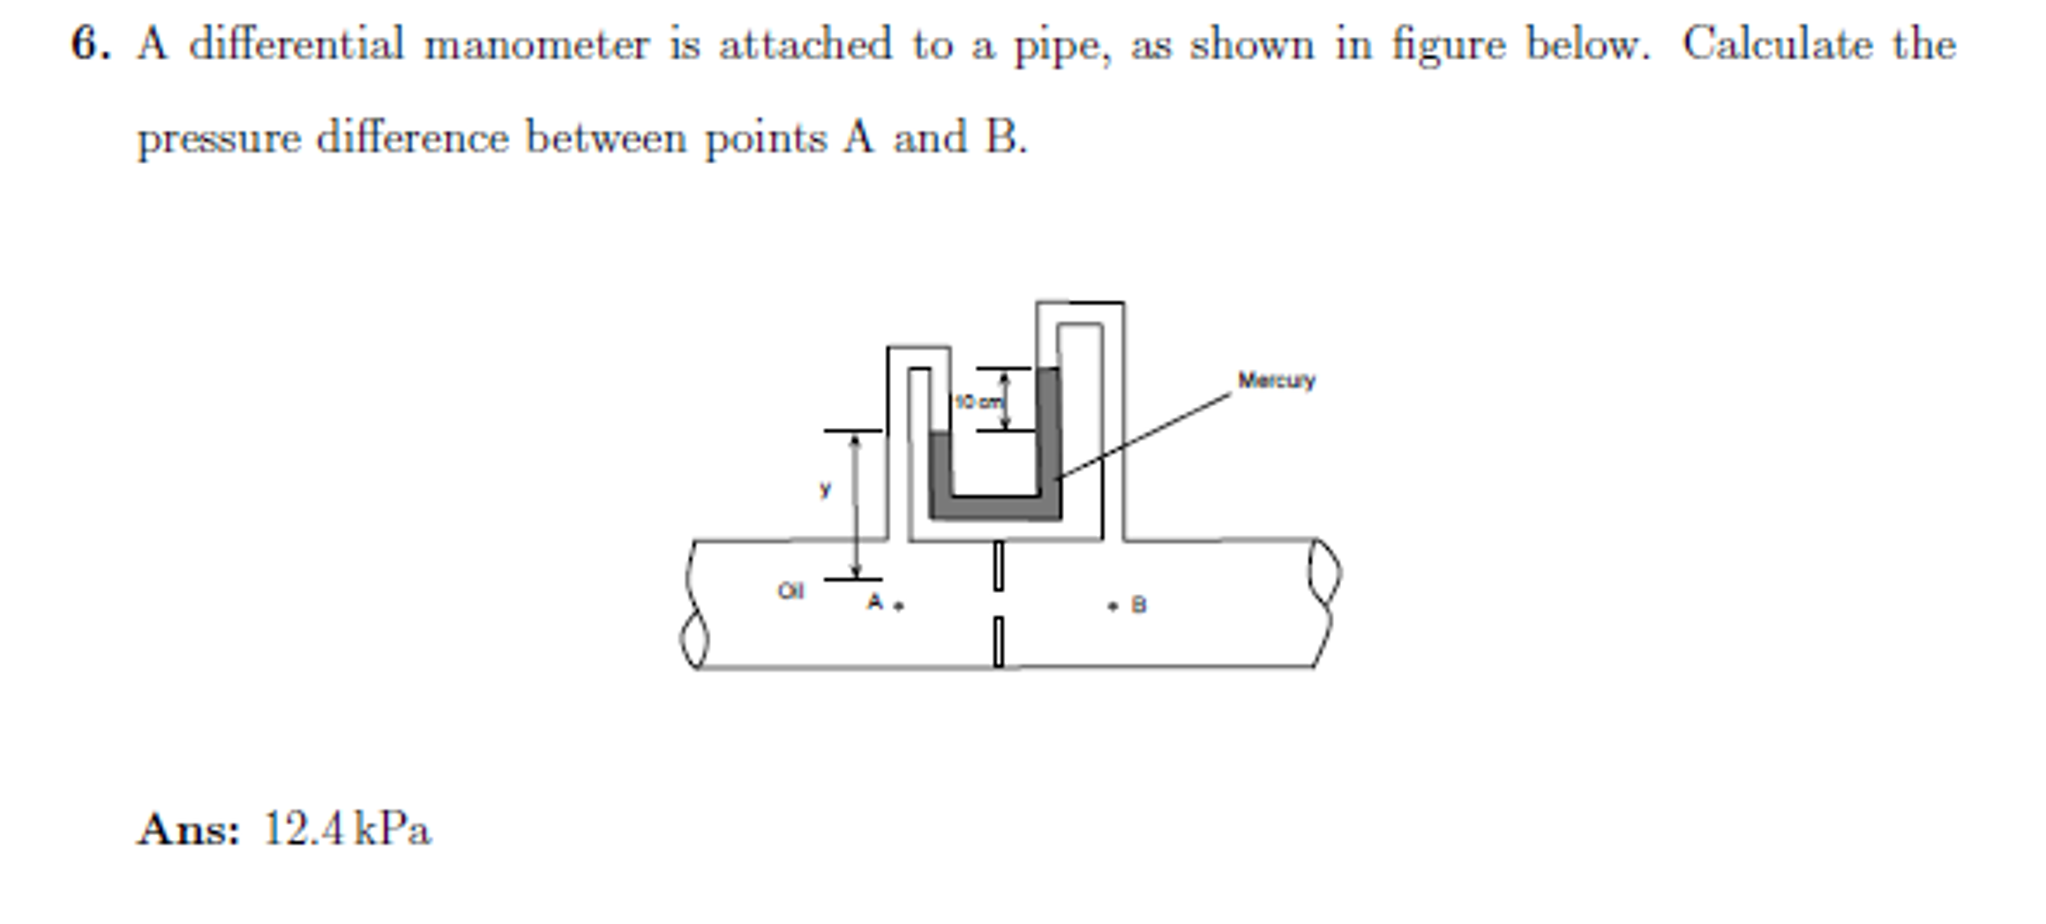 differential manometer. a differential manometer is attached to pipe, as